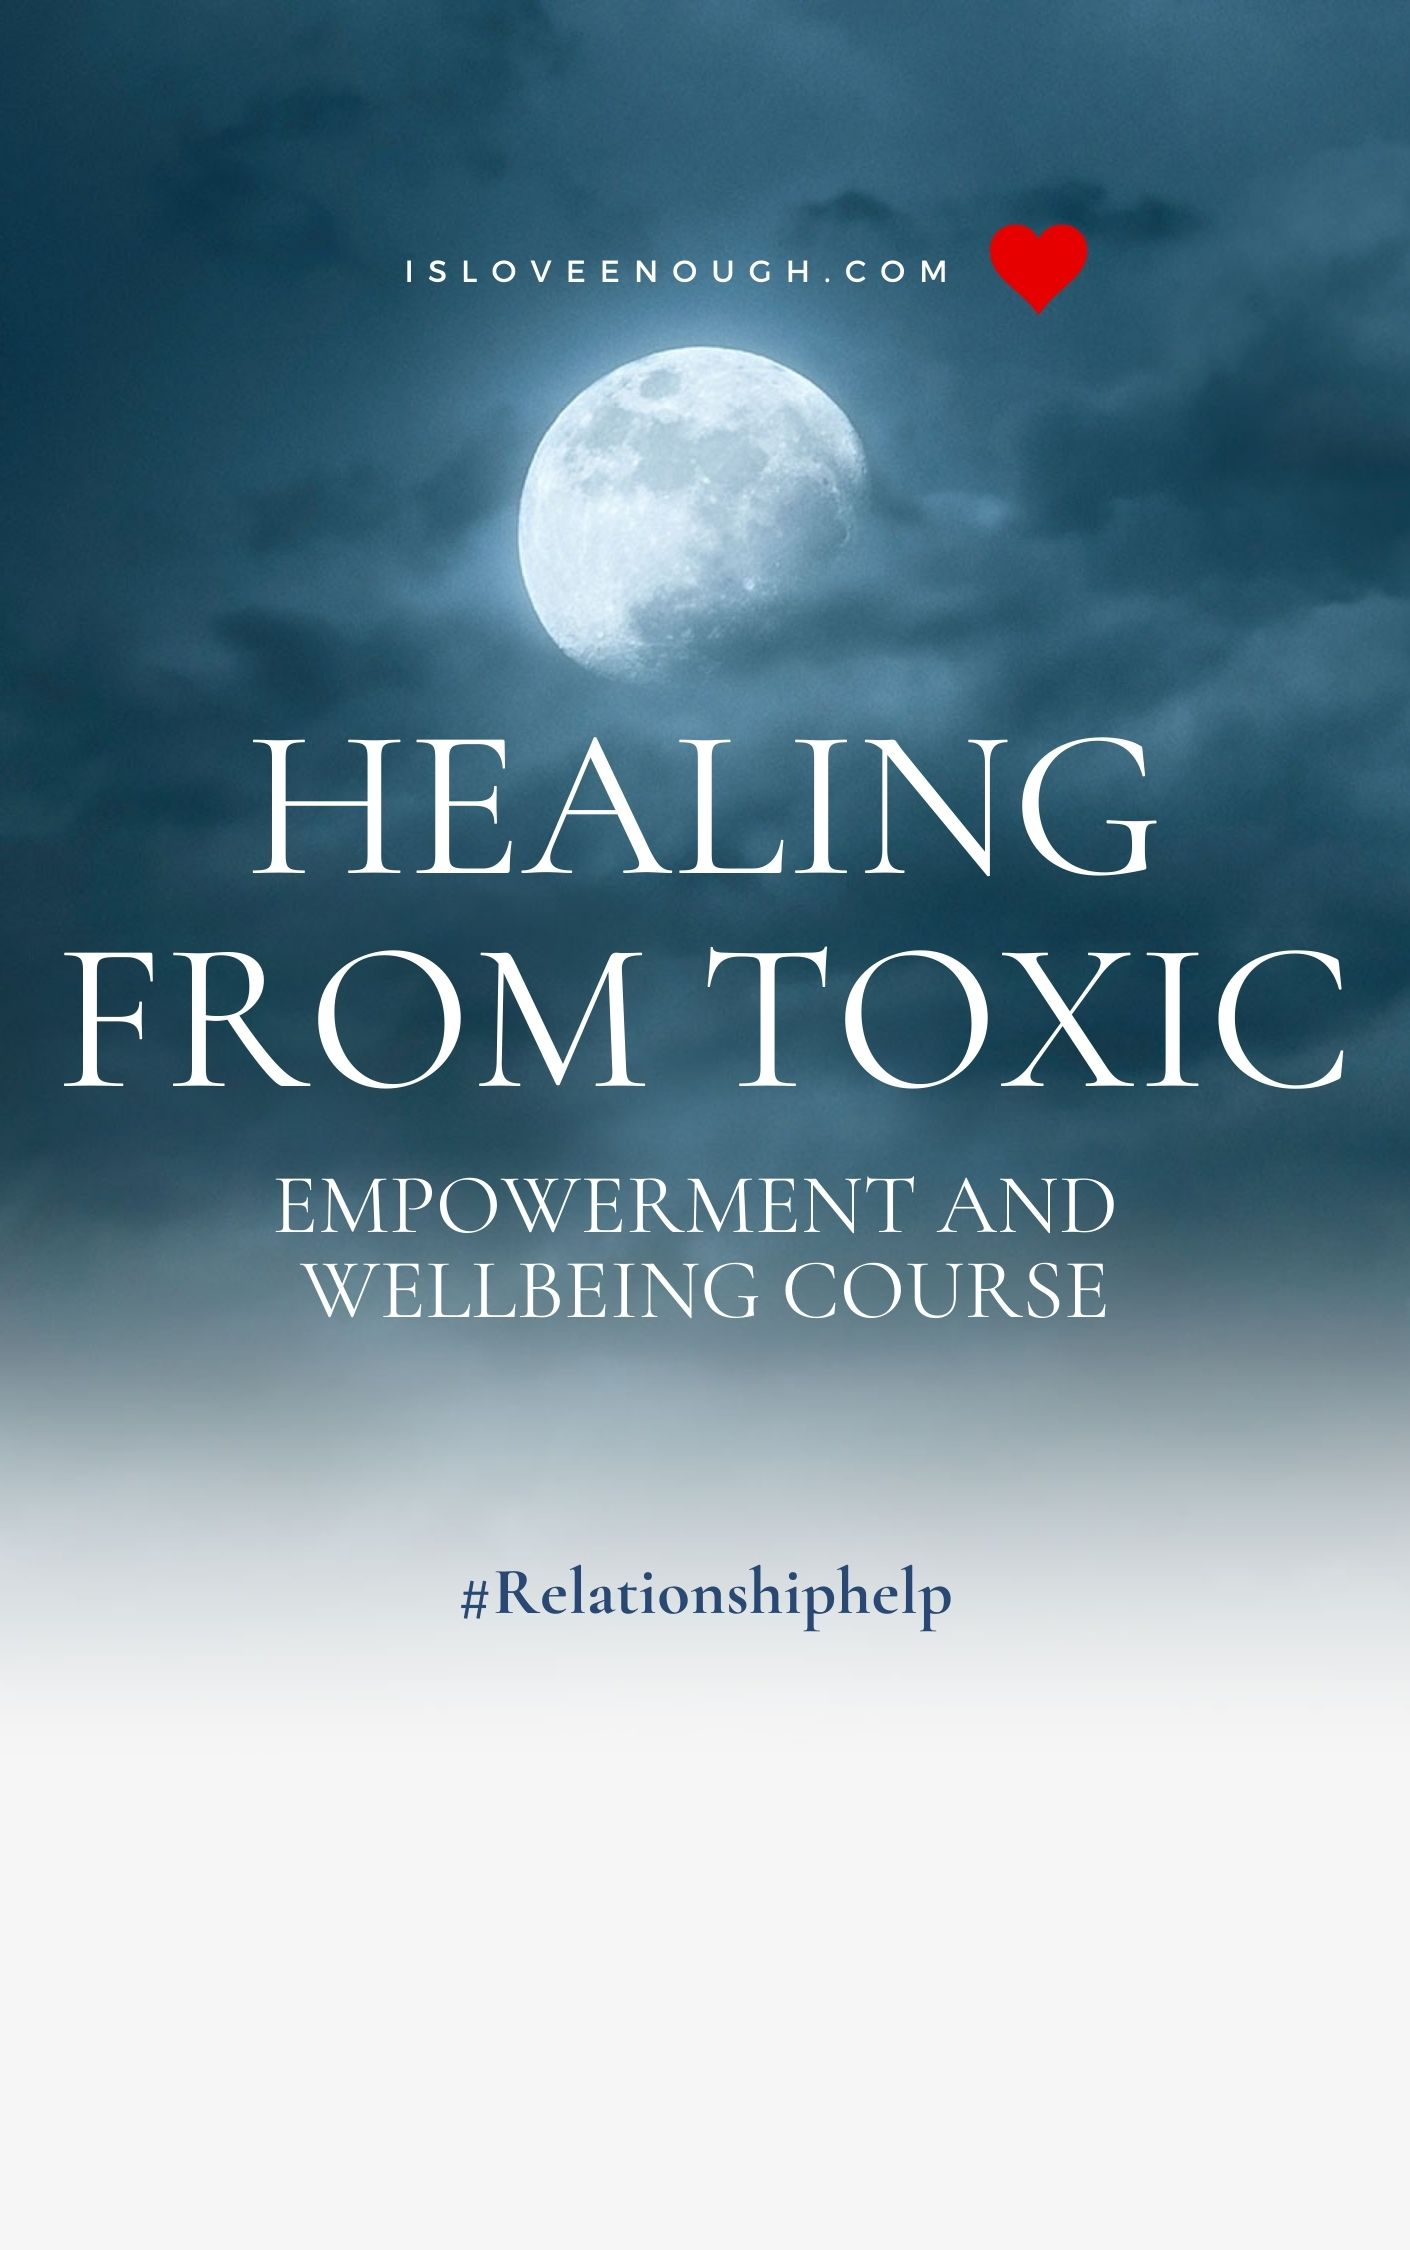 Healing from toxic - empowerment & wellbeing course